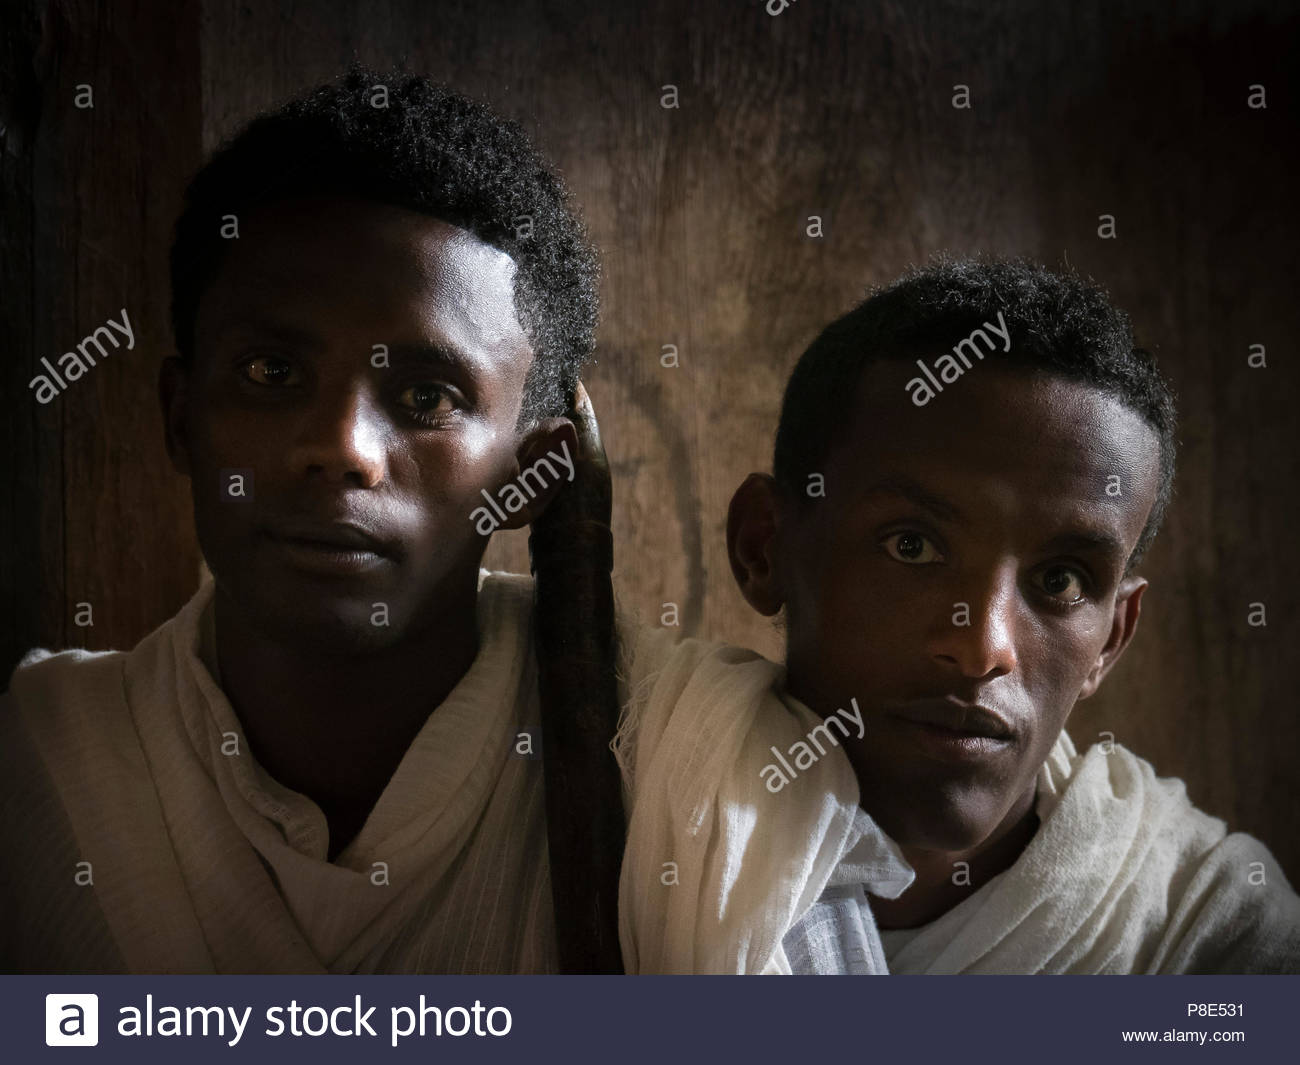 Young priest students at Ura Kidane Mehret Monastery, Ethiopia - Stock Image